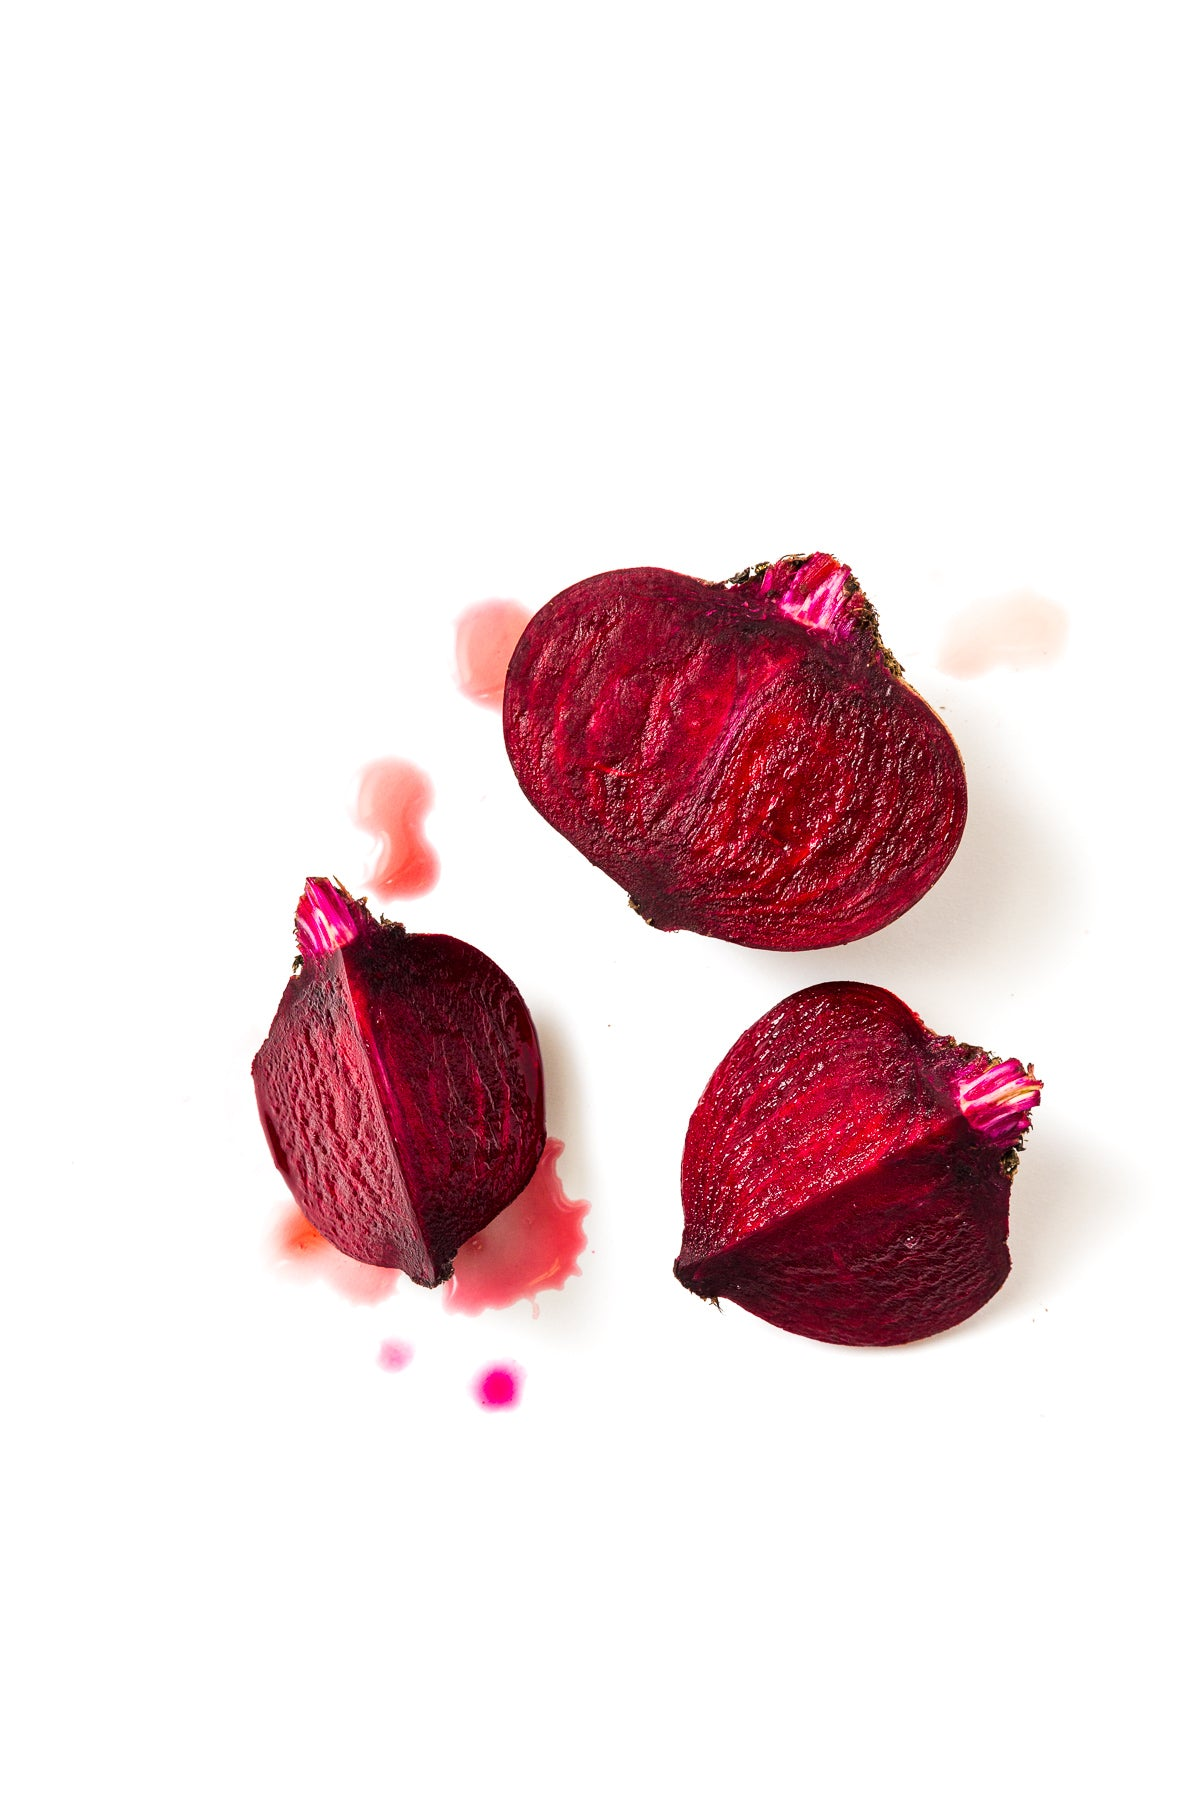 Image of top of three red beets used for Miss Jones Baking Co Beet Red Velvet Layer Cake